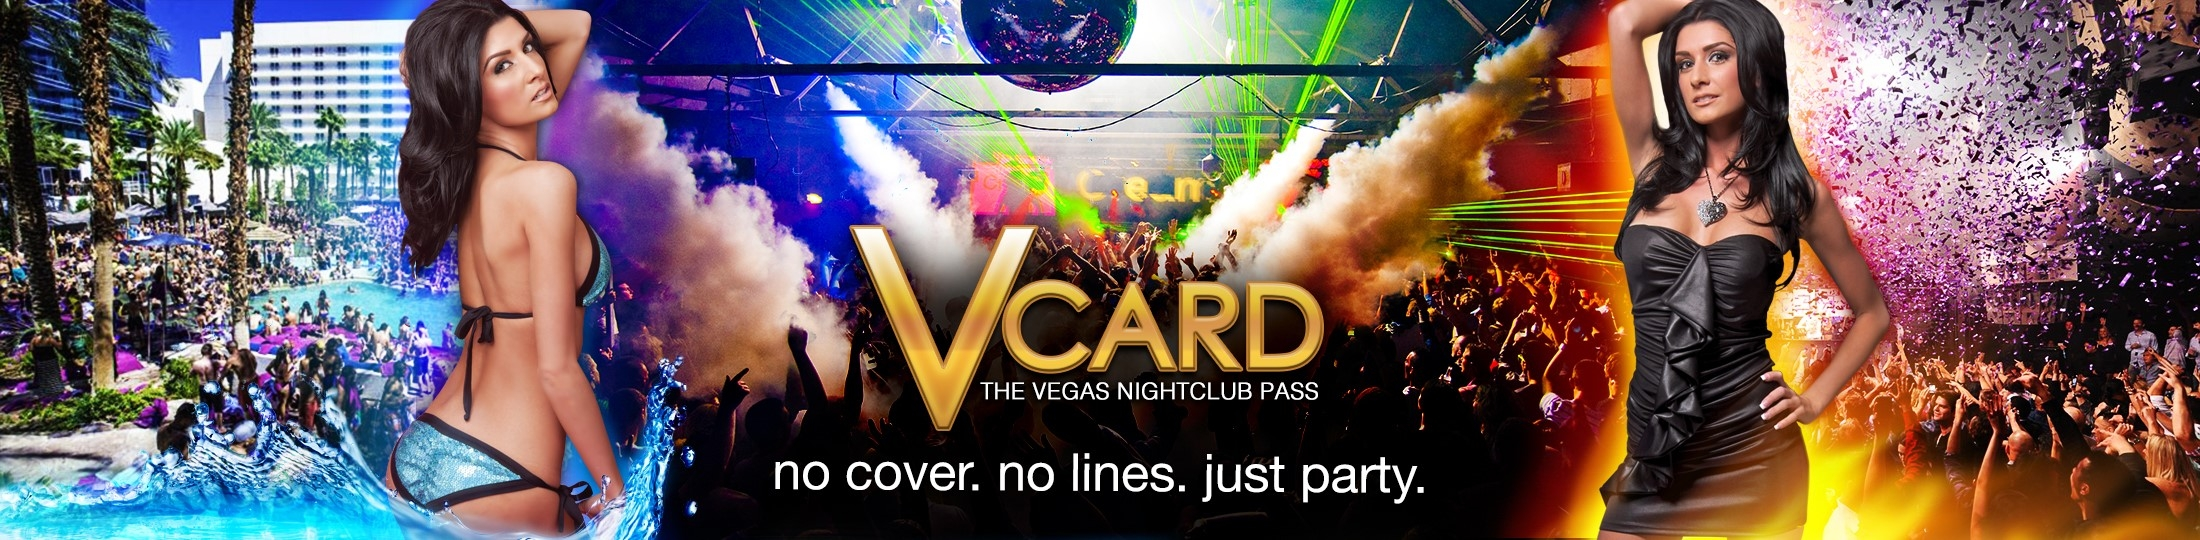 V Card: The Vegas Nightclub Pass